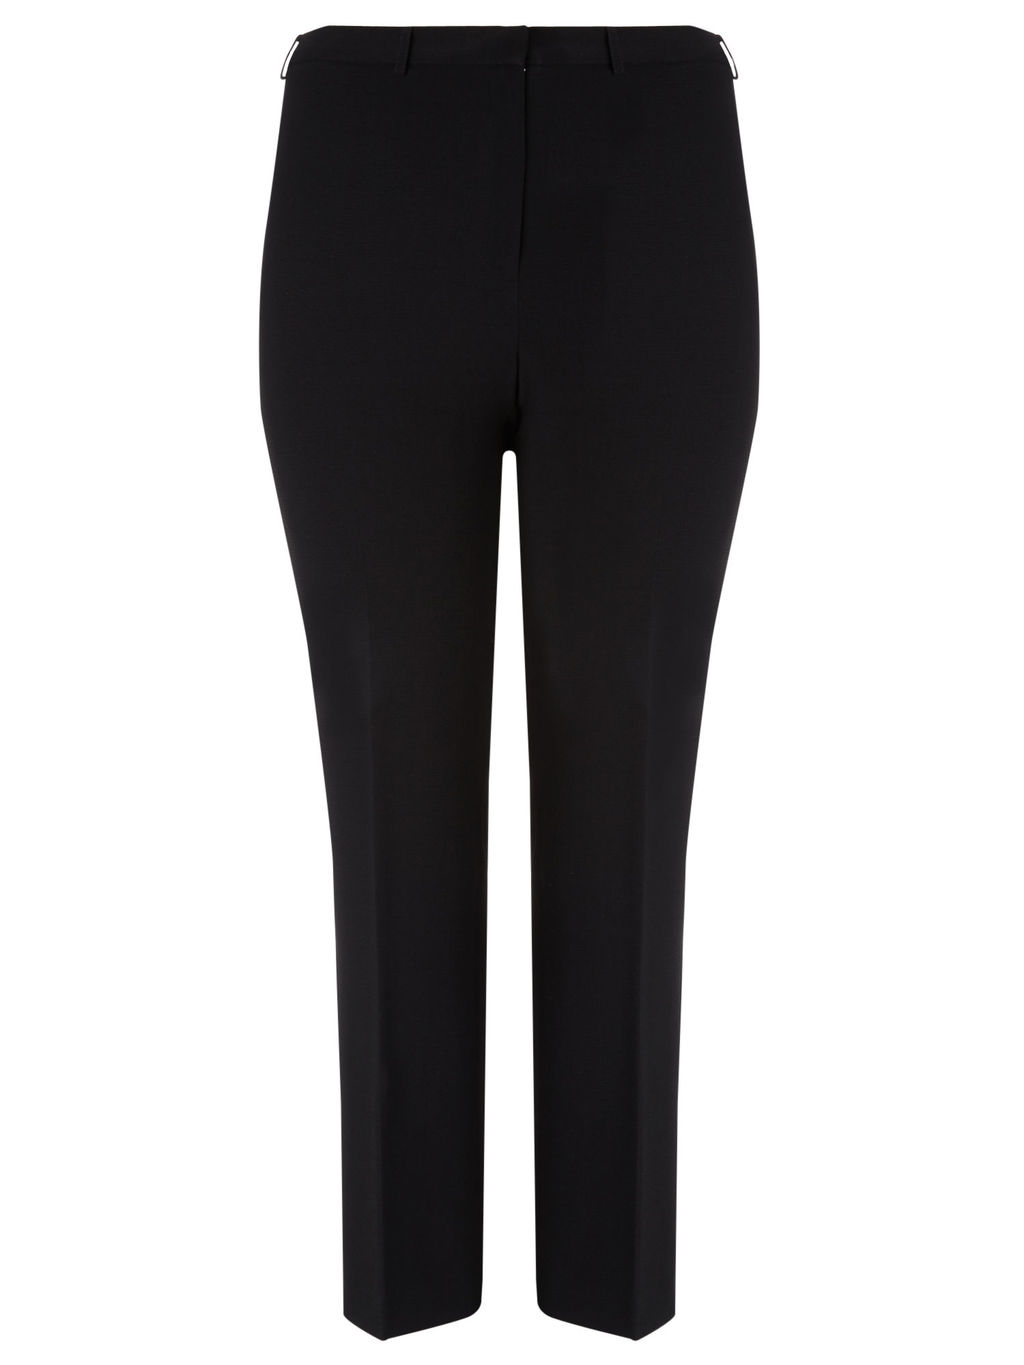 Tailored Trousers, Black - length: standard; pattern: plain; waist: mid/regular rise; predominant colour: black; occasions: casual, creative work; fibres: polyester/polyamide - 100%; fit: slim leg; pattern type: fabric; texture group: woven light midweight; style: standard; season: a/w 2015; wardrobe: basic